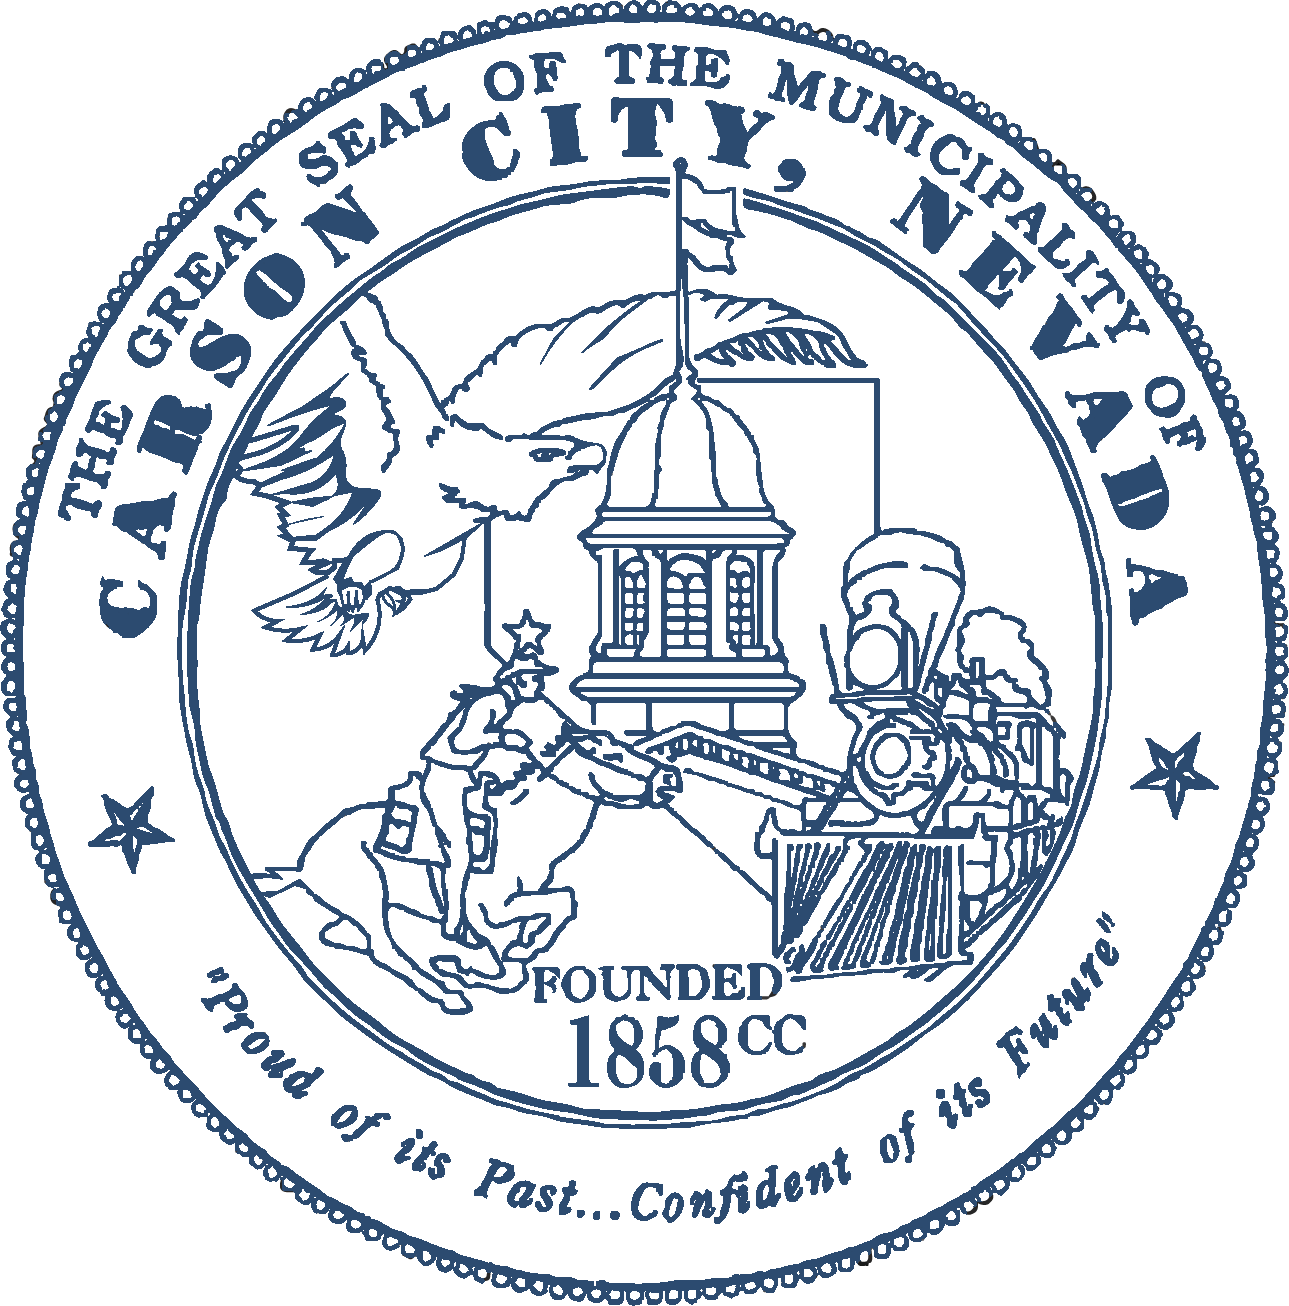 The great seal of the Municipality of Carson City. Imaging the Capitol Building, a soaring hawk, the train system, and a cowboy.